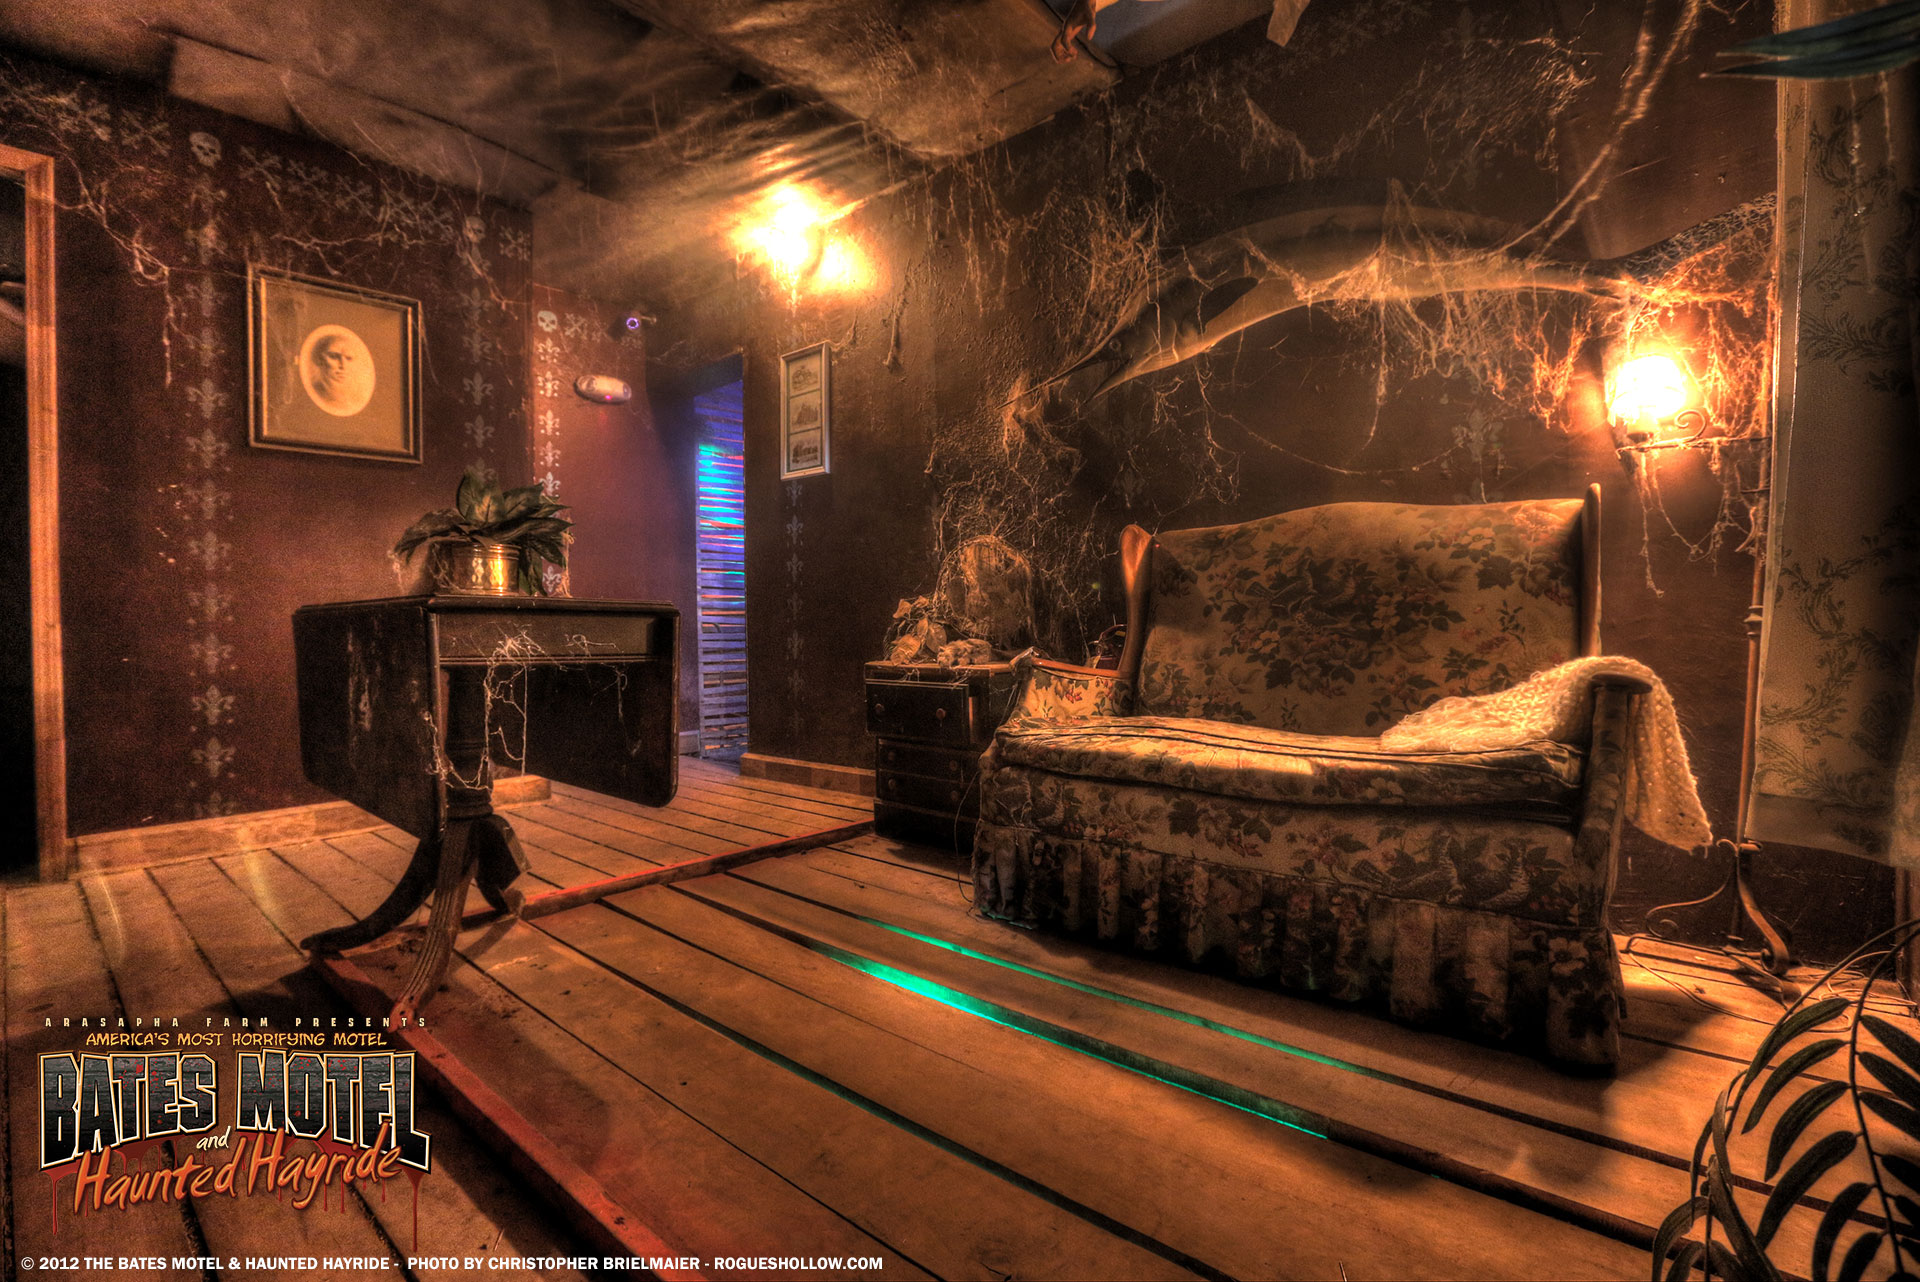 The bates motel pennhurst asylum photos rogues hollow for Haunted room ideas